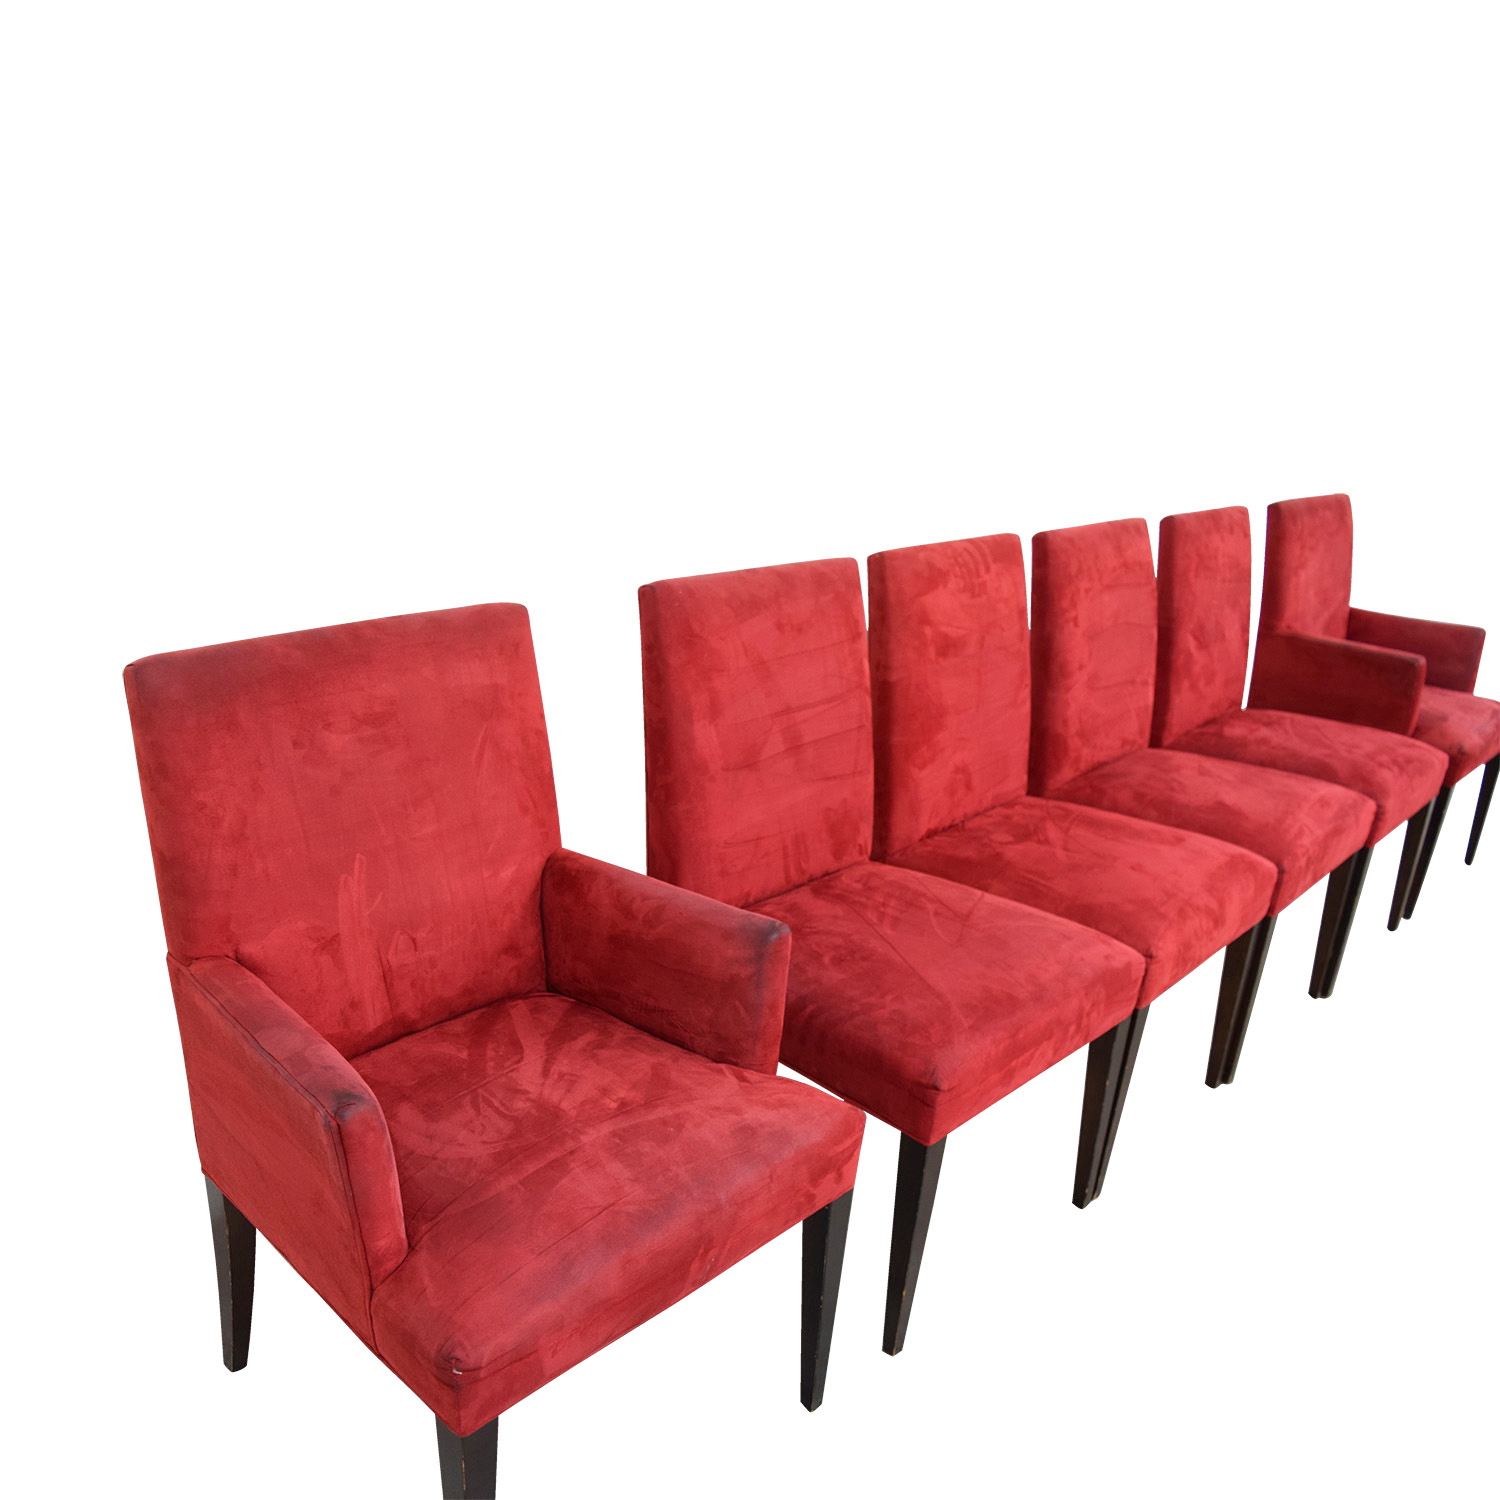 shop Crate & Barrel Microsuede Cranberry Chairs Crate & Barrel Dining Chairs